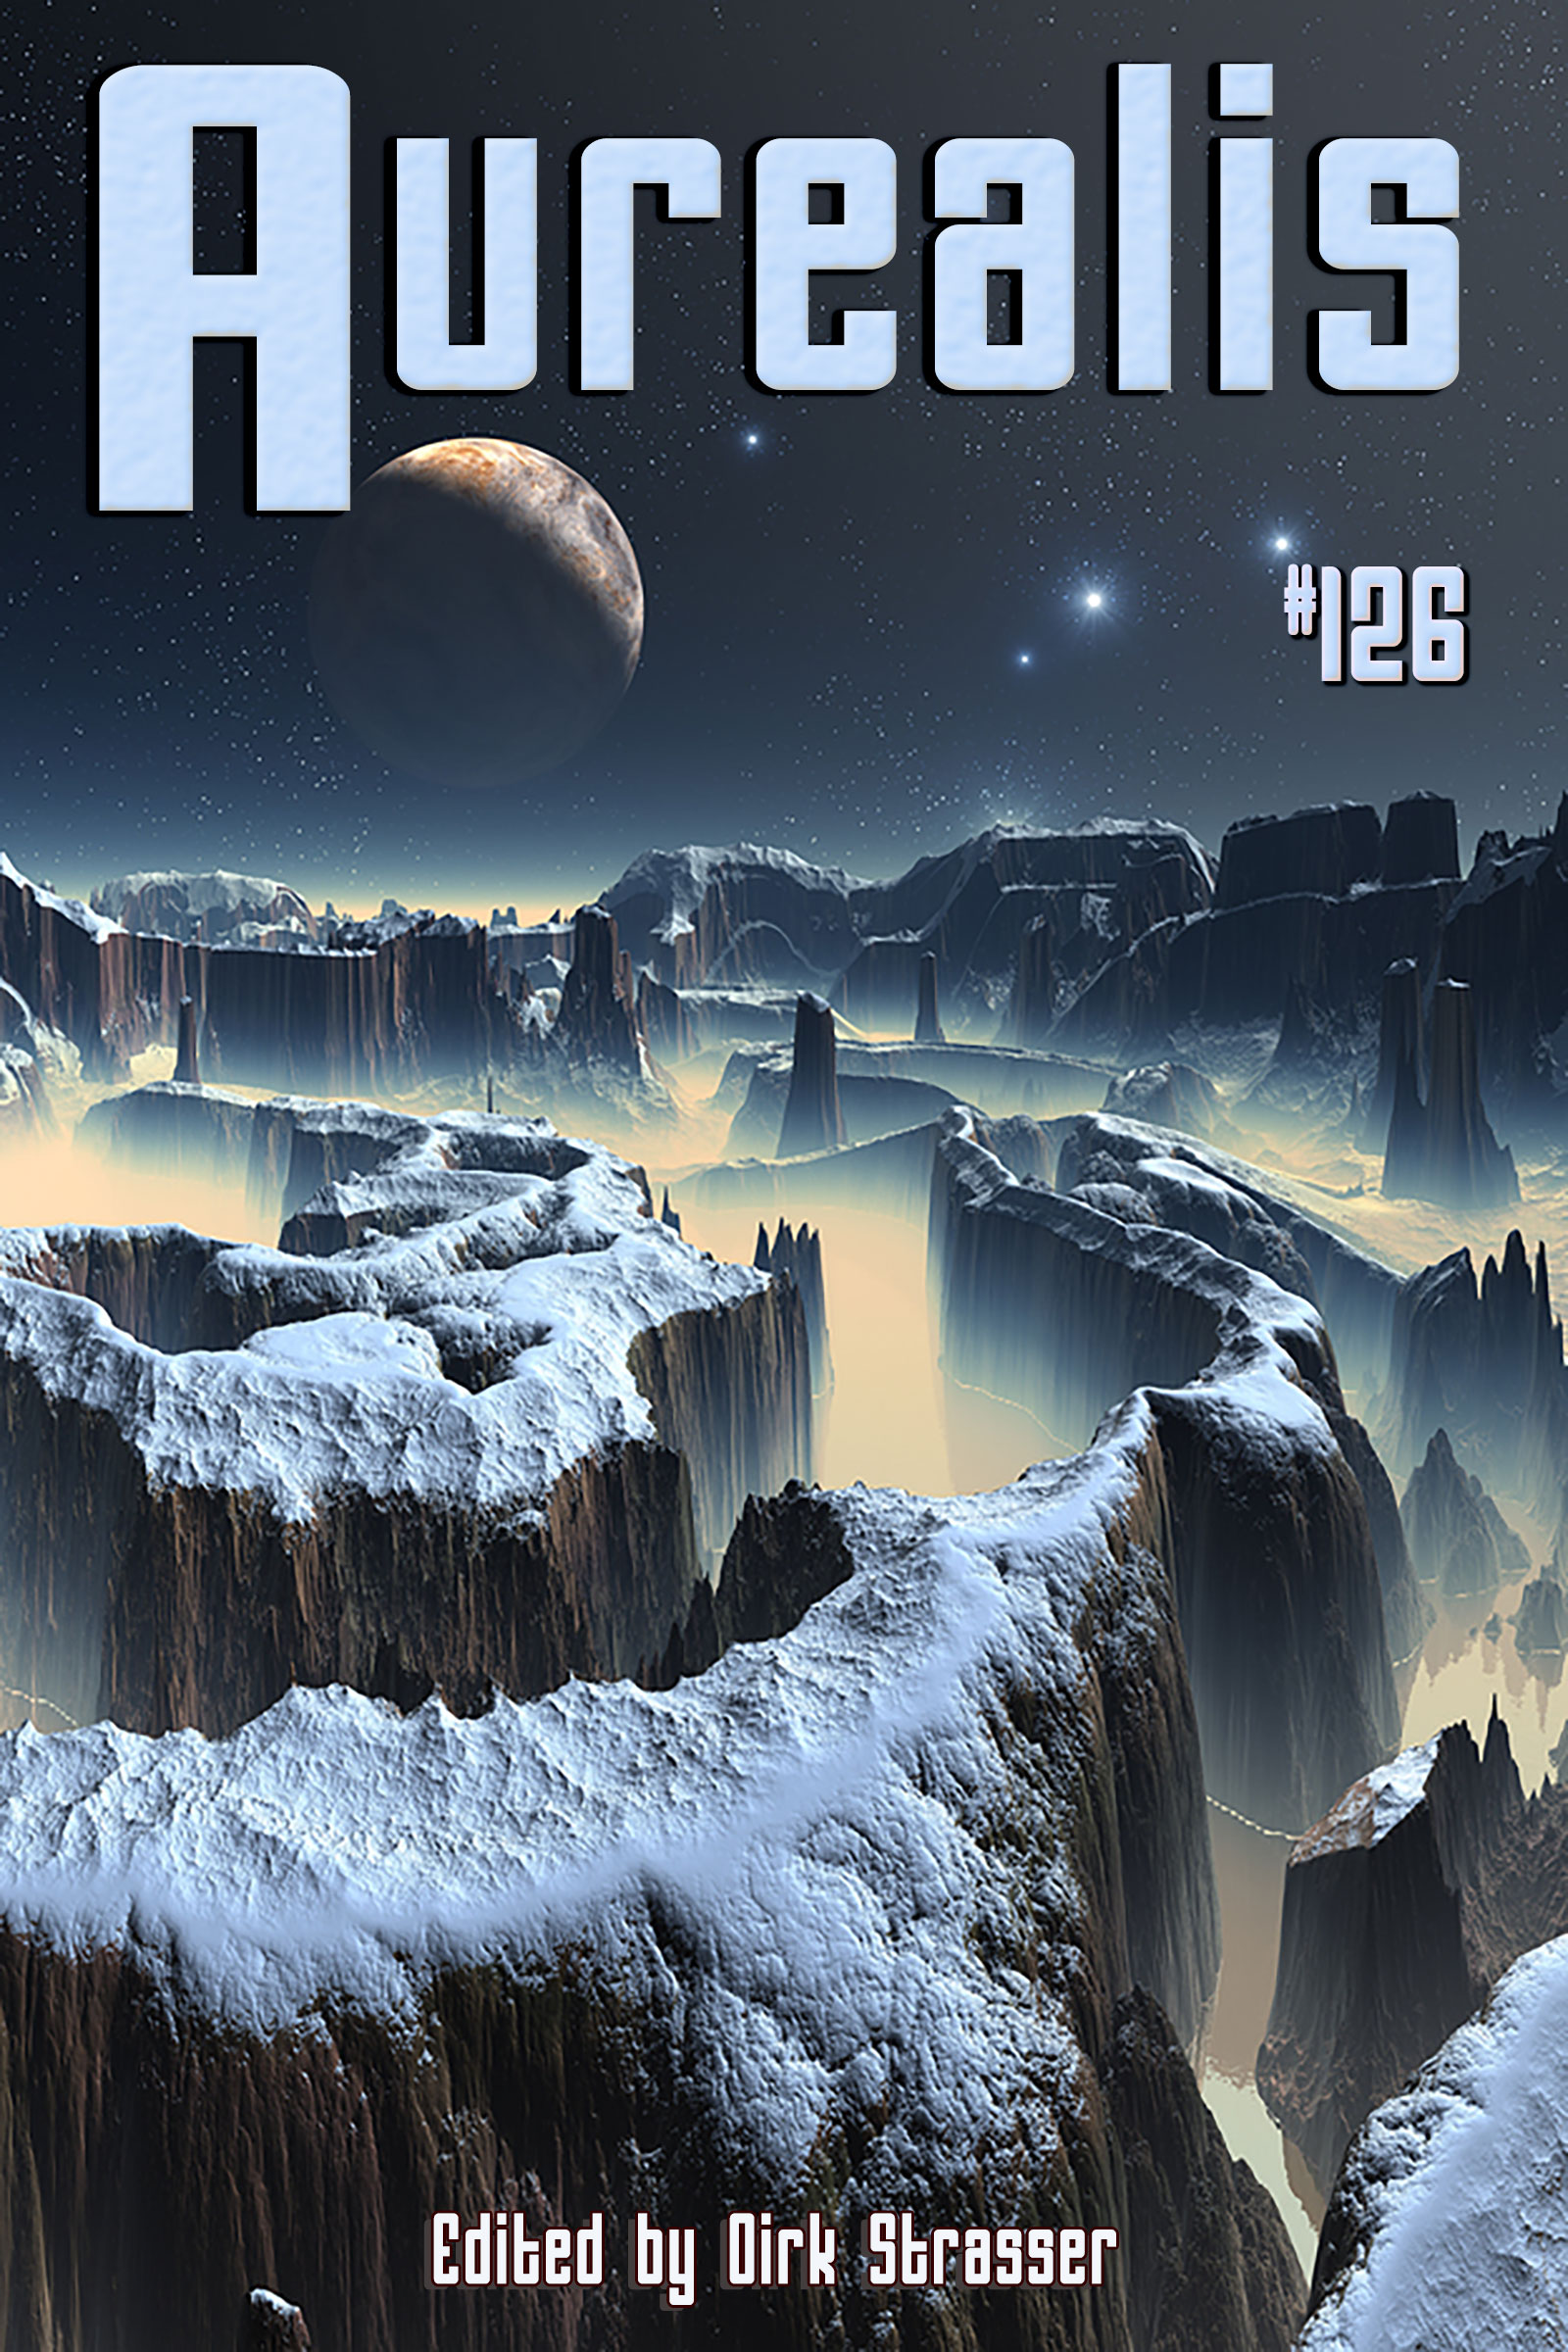 Aurealis-126-cover-mountain-maze-planet